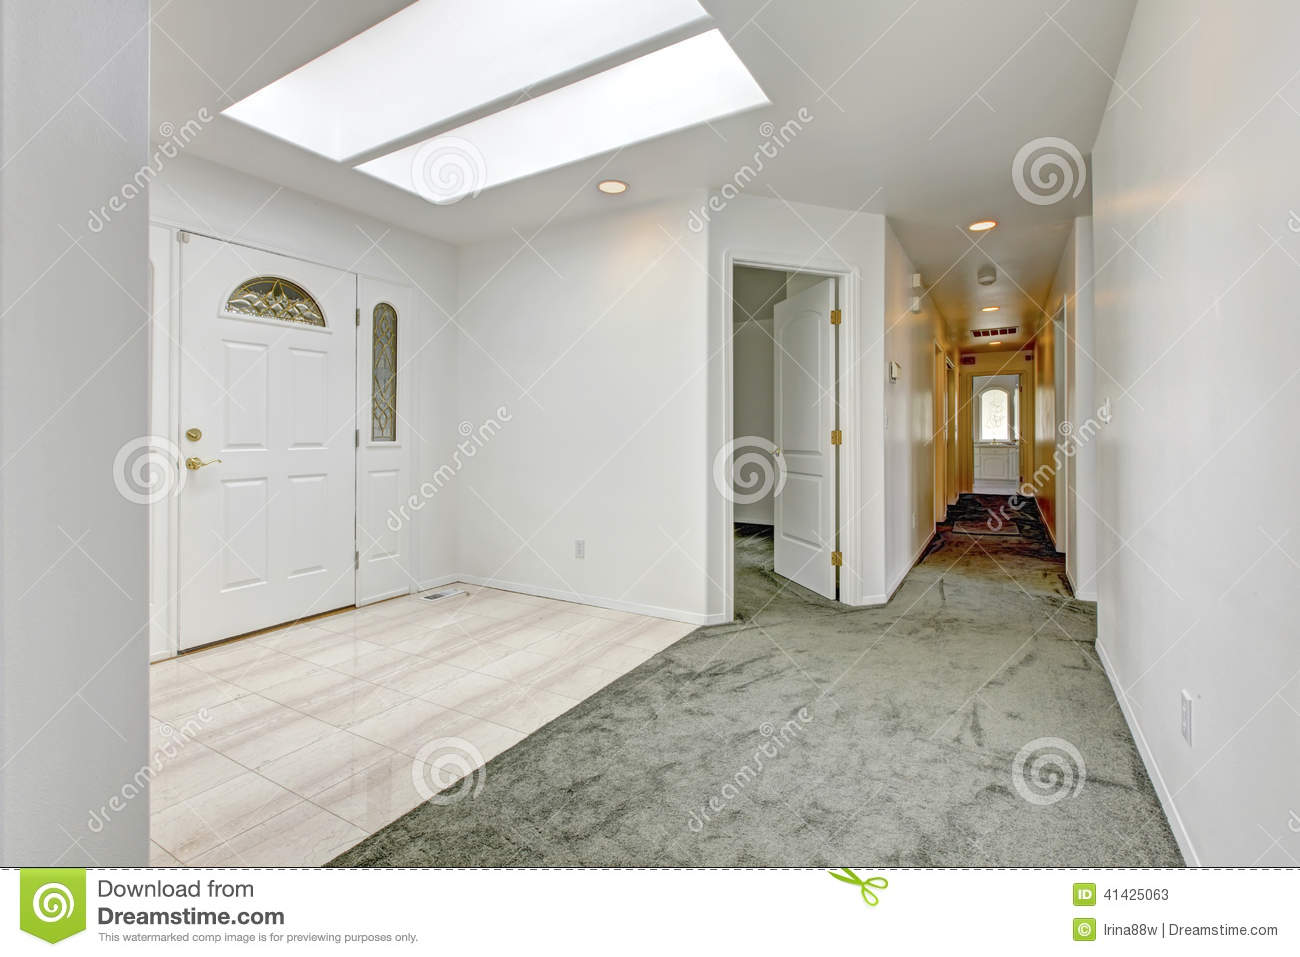 Bright Entrance Hallway With Skylight Stock Photo - Image ...